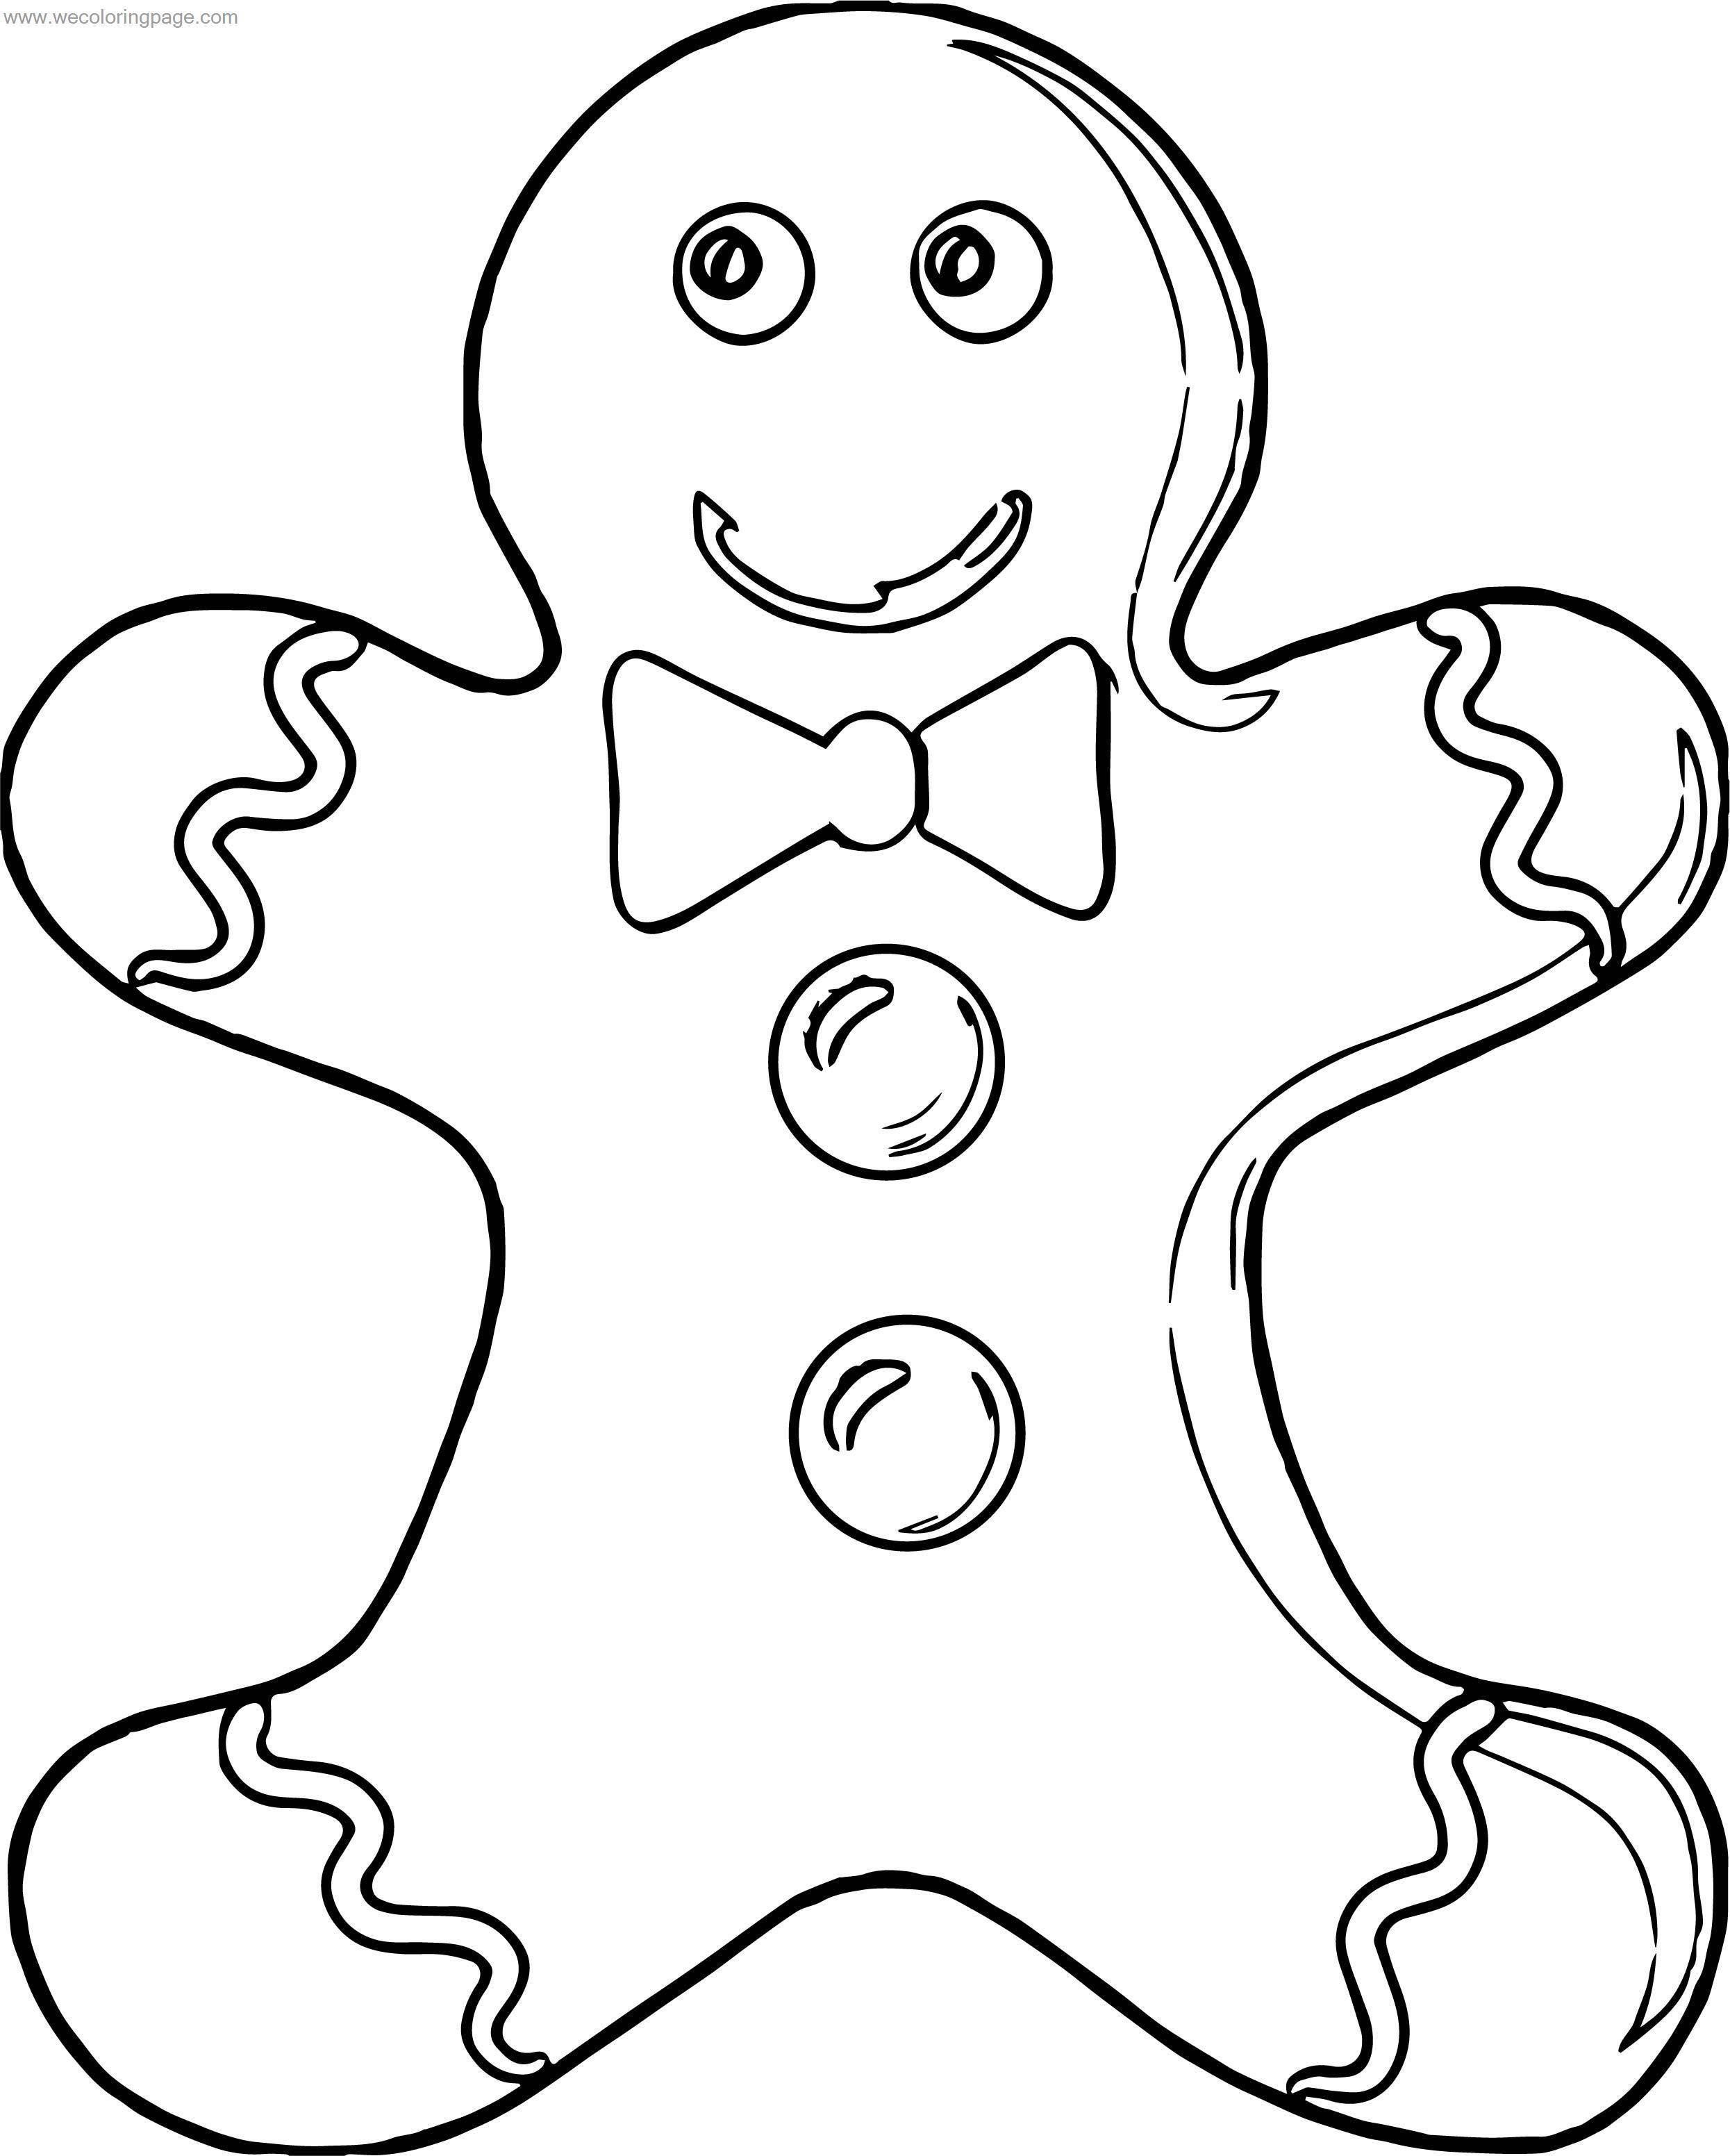 gingerbread cookie coloring page - exchange gingerbread man cookie gingerbread house coloring